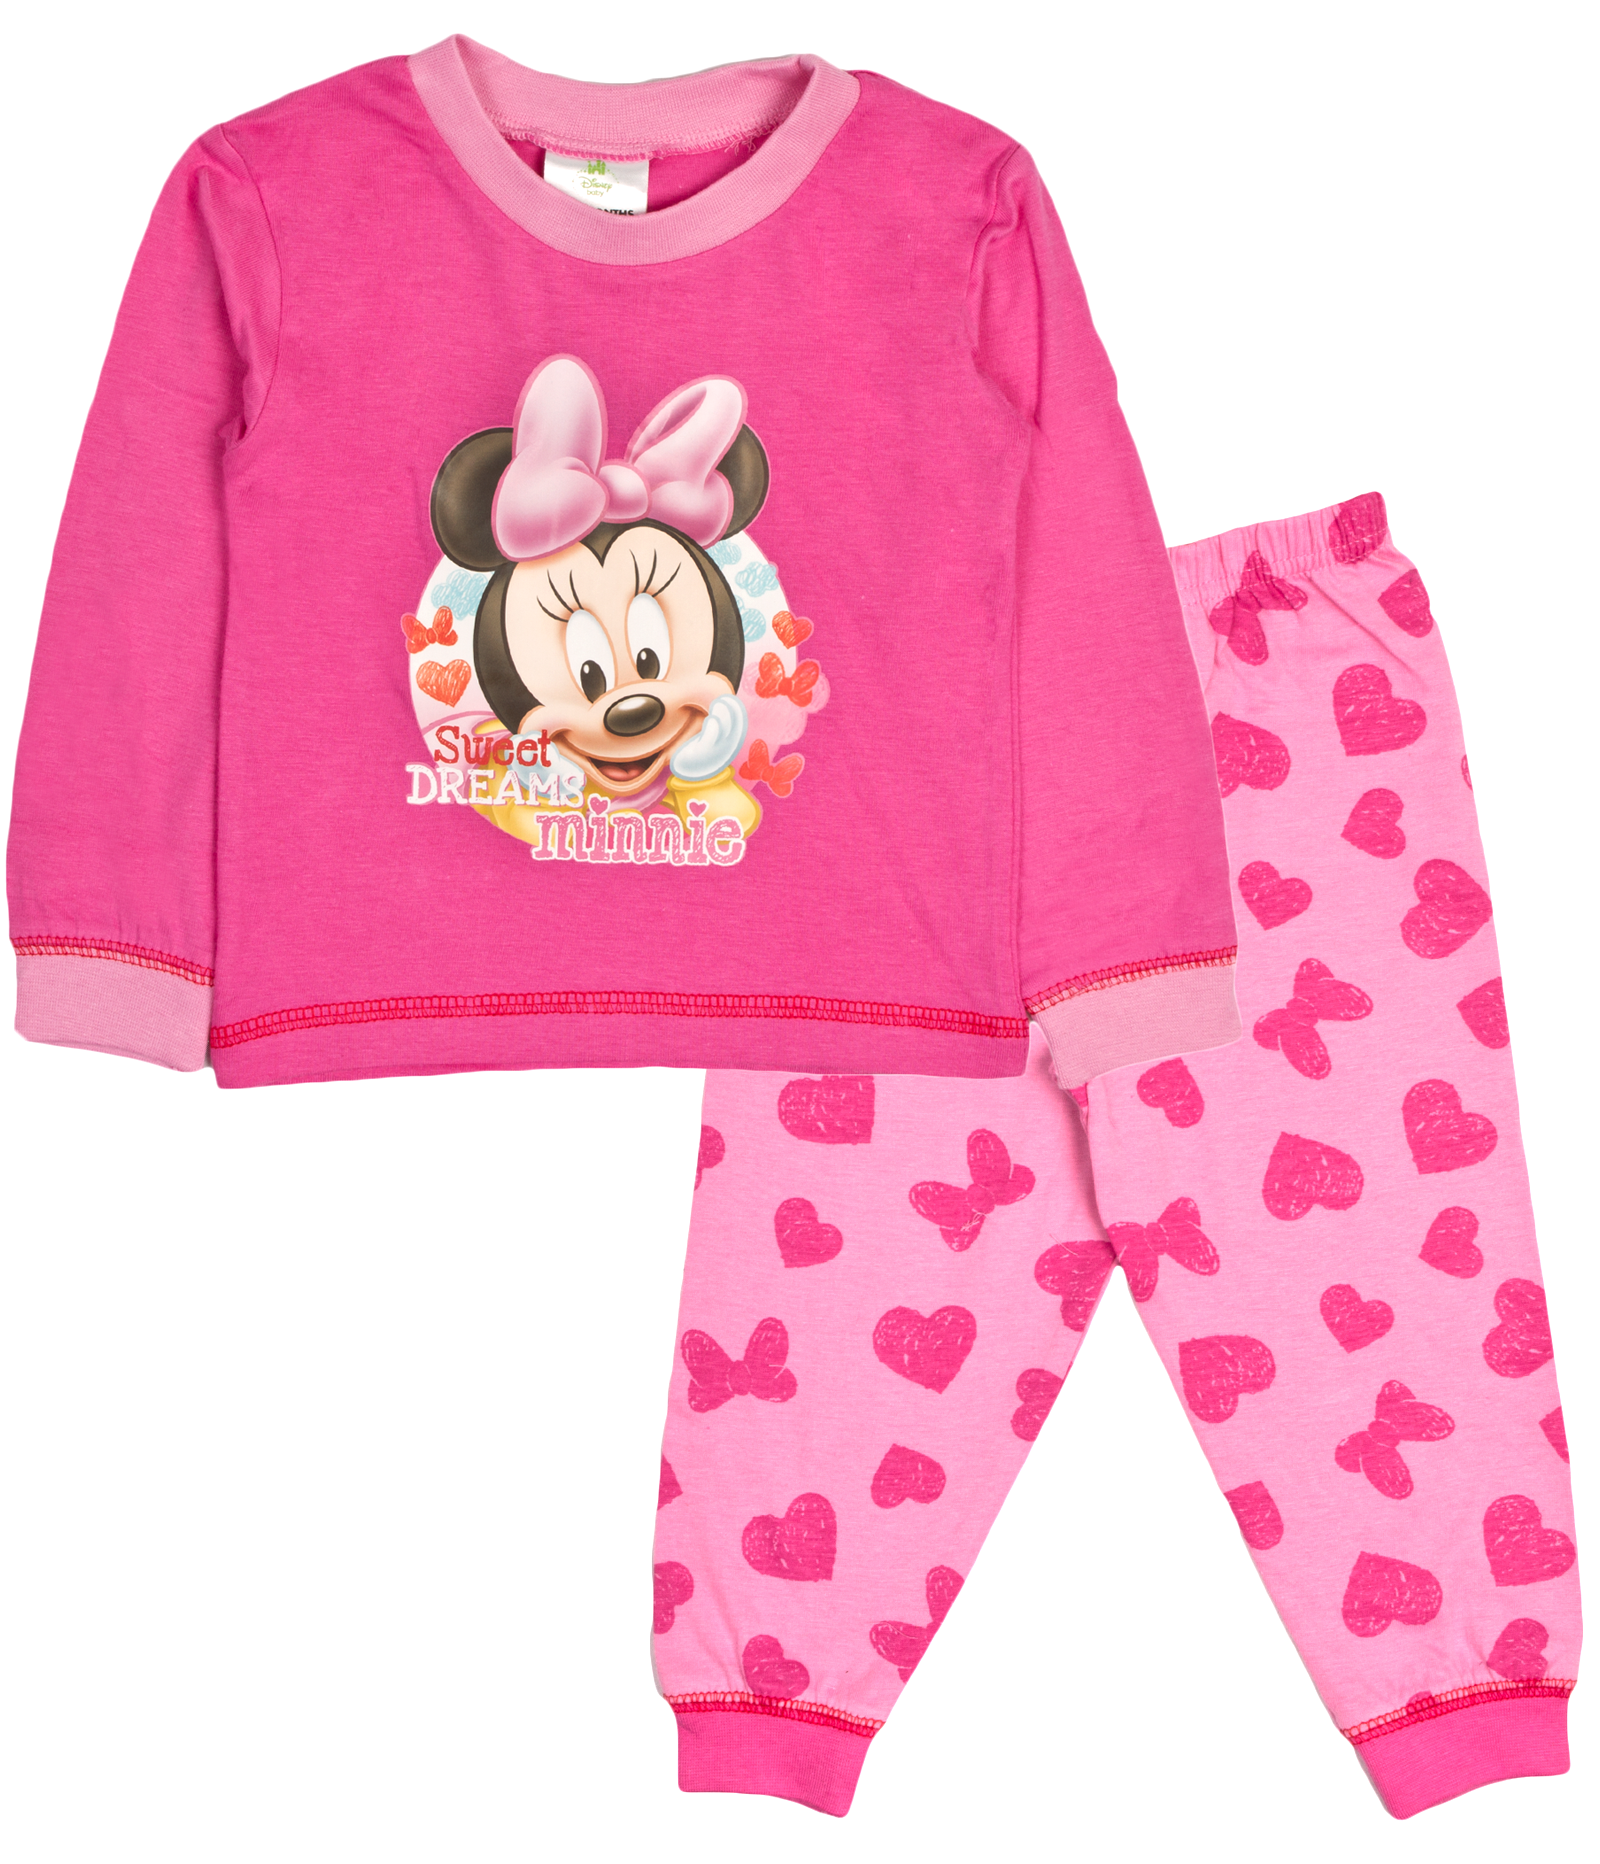 49a96857e88b Baby Boys Girls Pyjamas Toddlers Disney Mickey Minnie Mouse Pjs Size ...